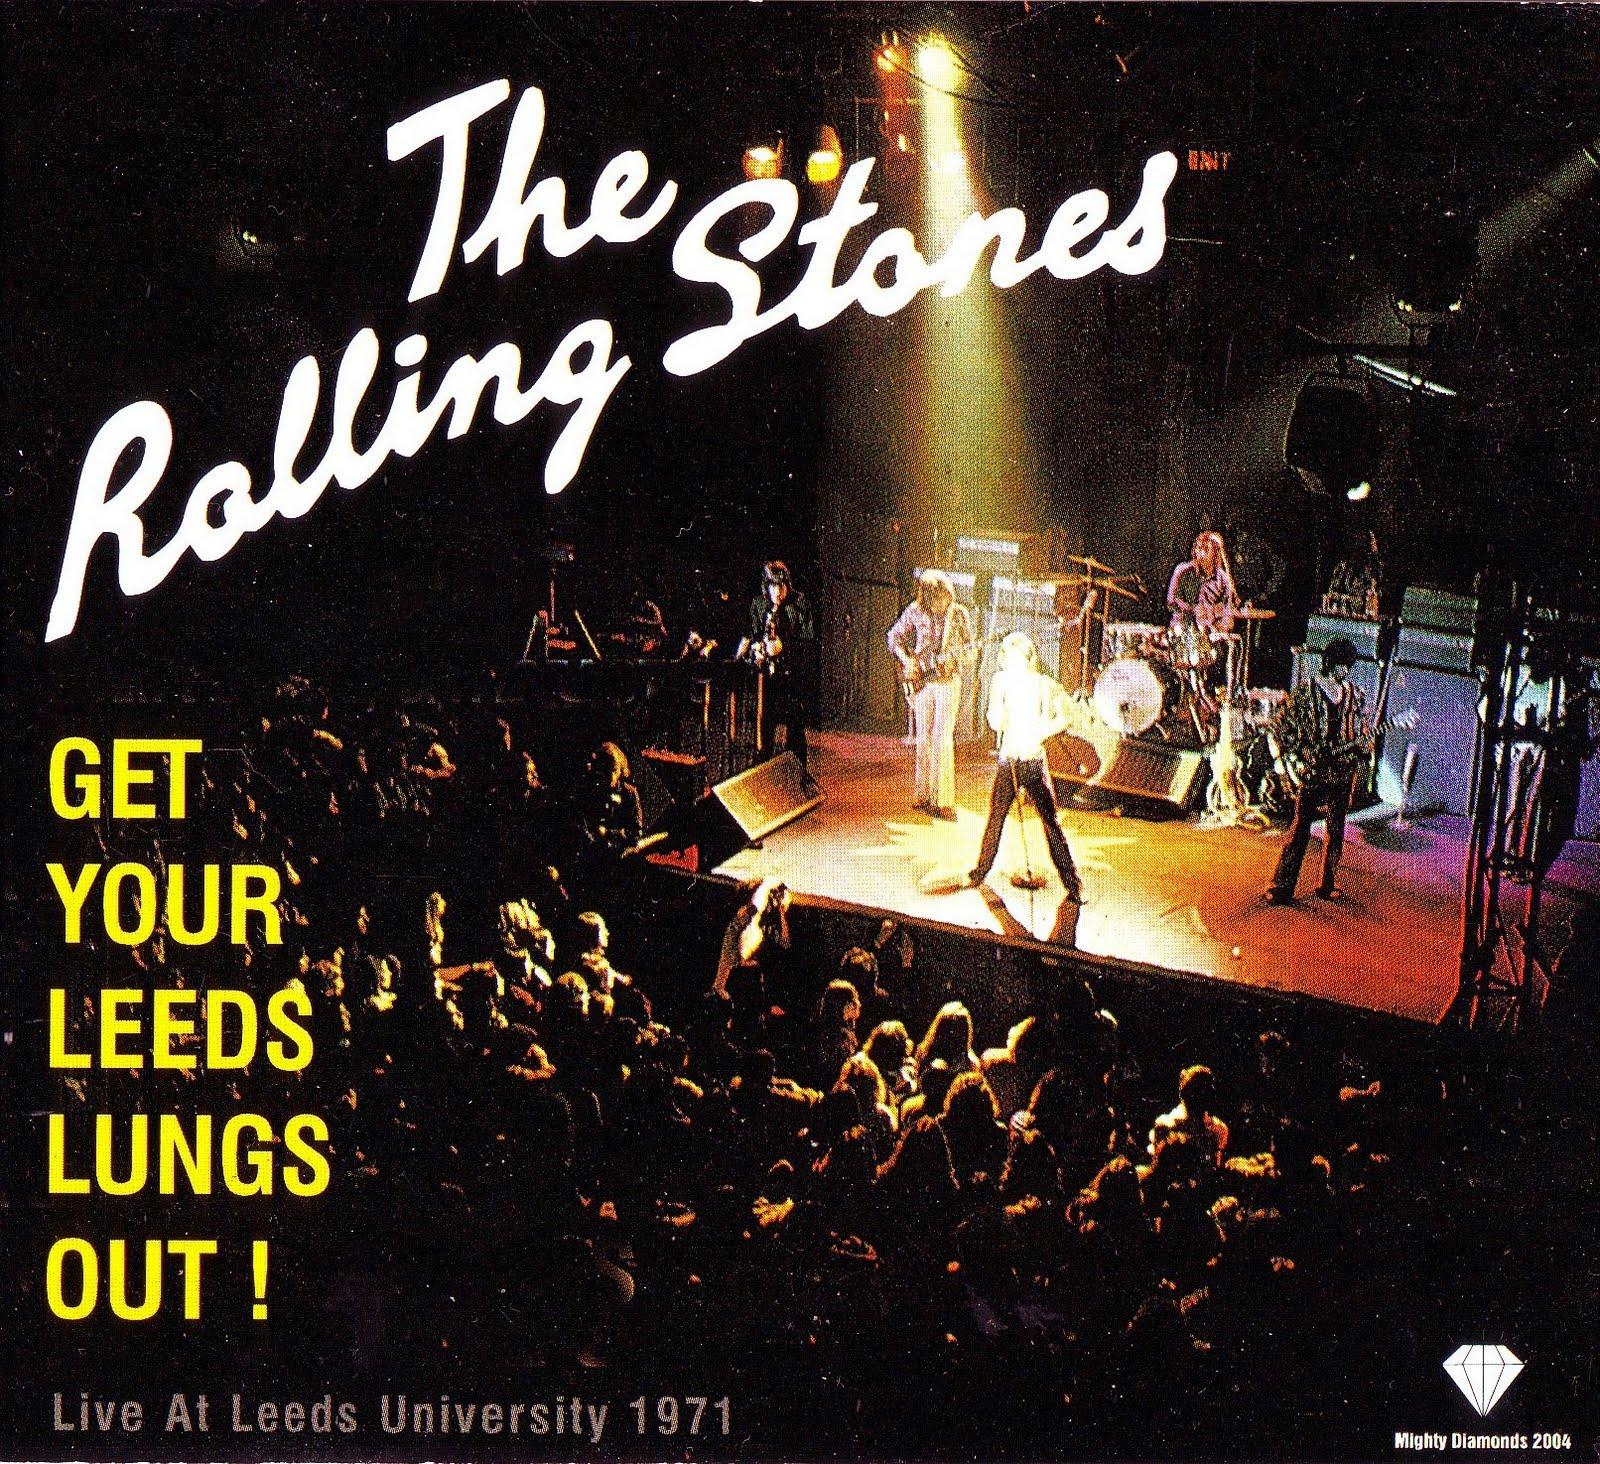 The Rolling Stones - LIve At Leeds 1971